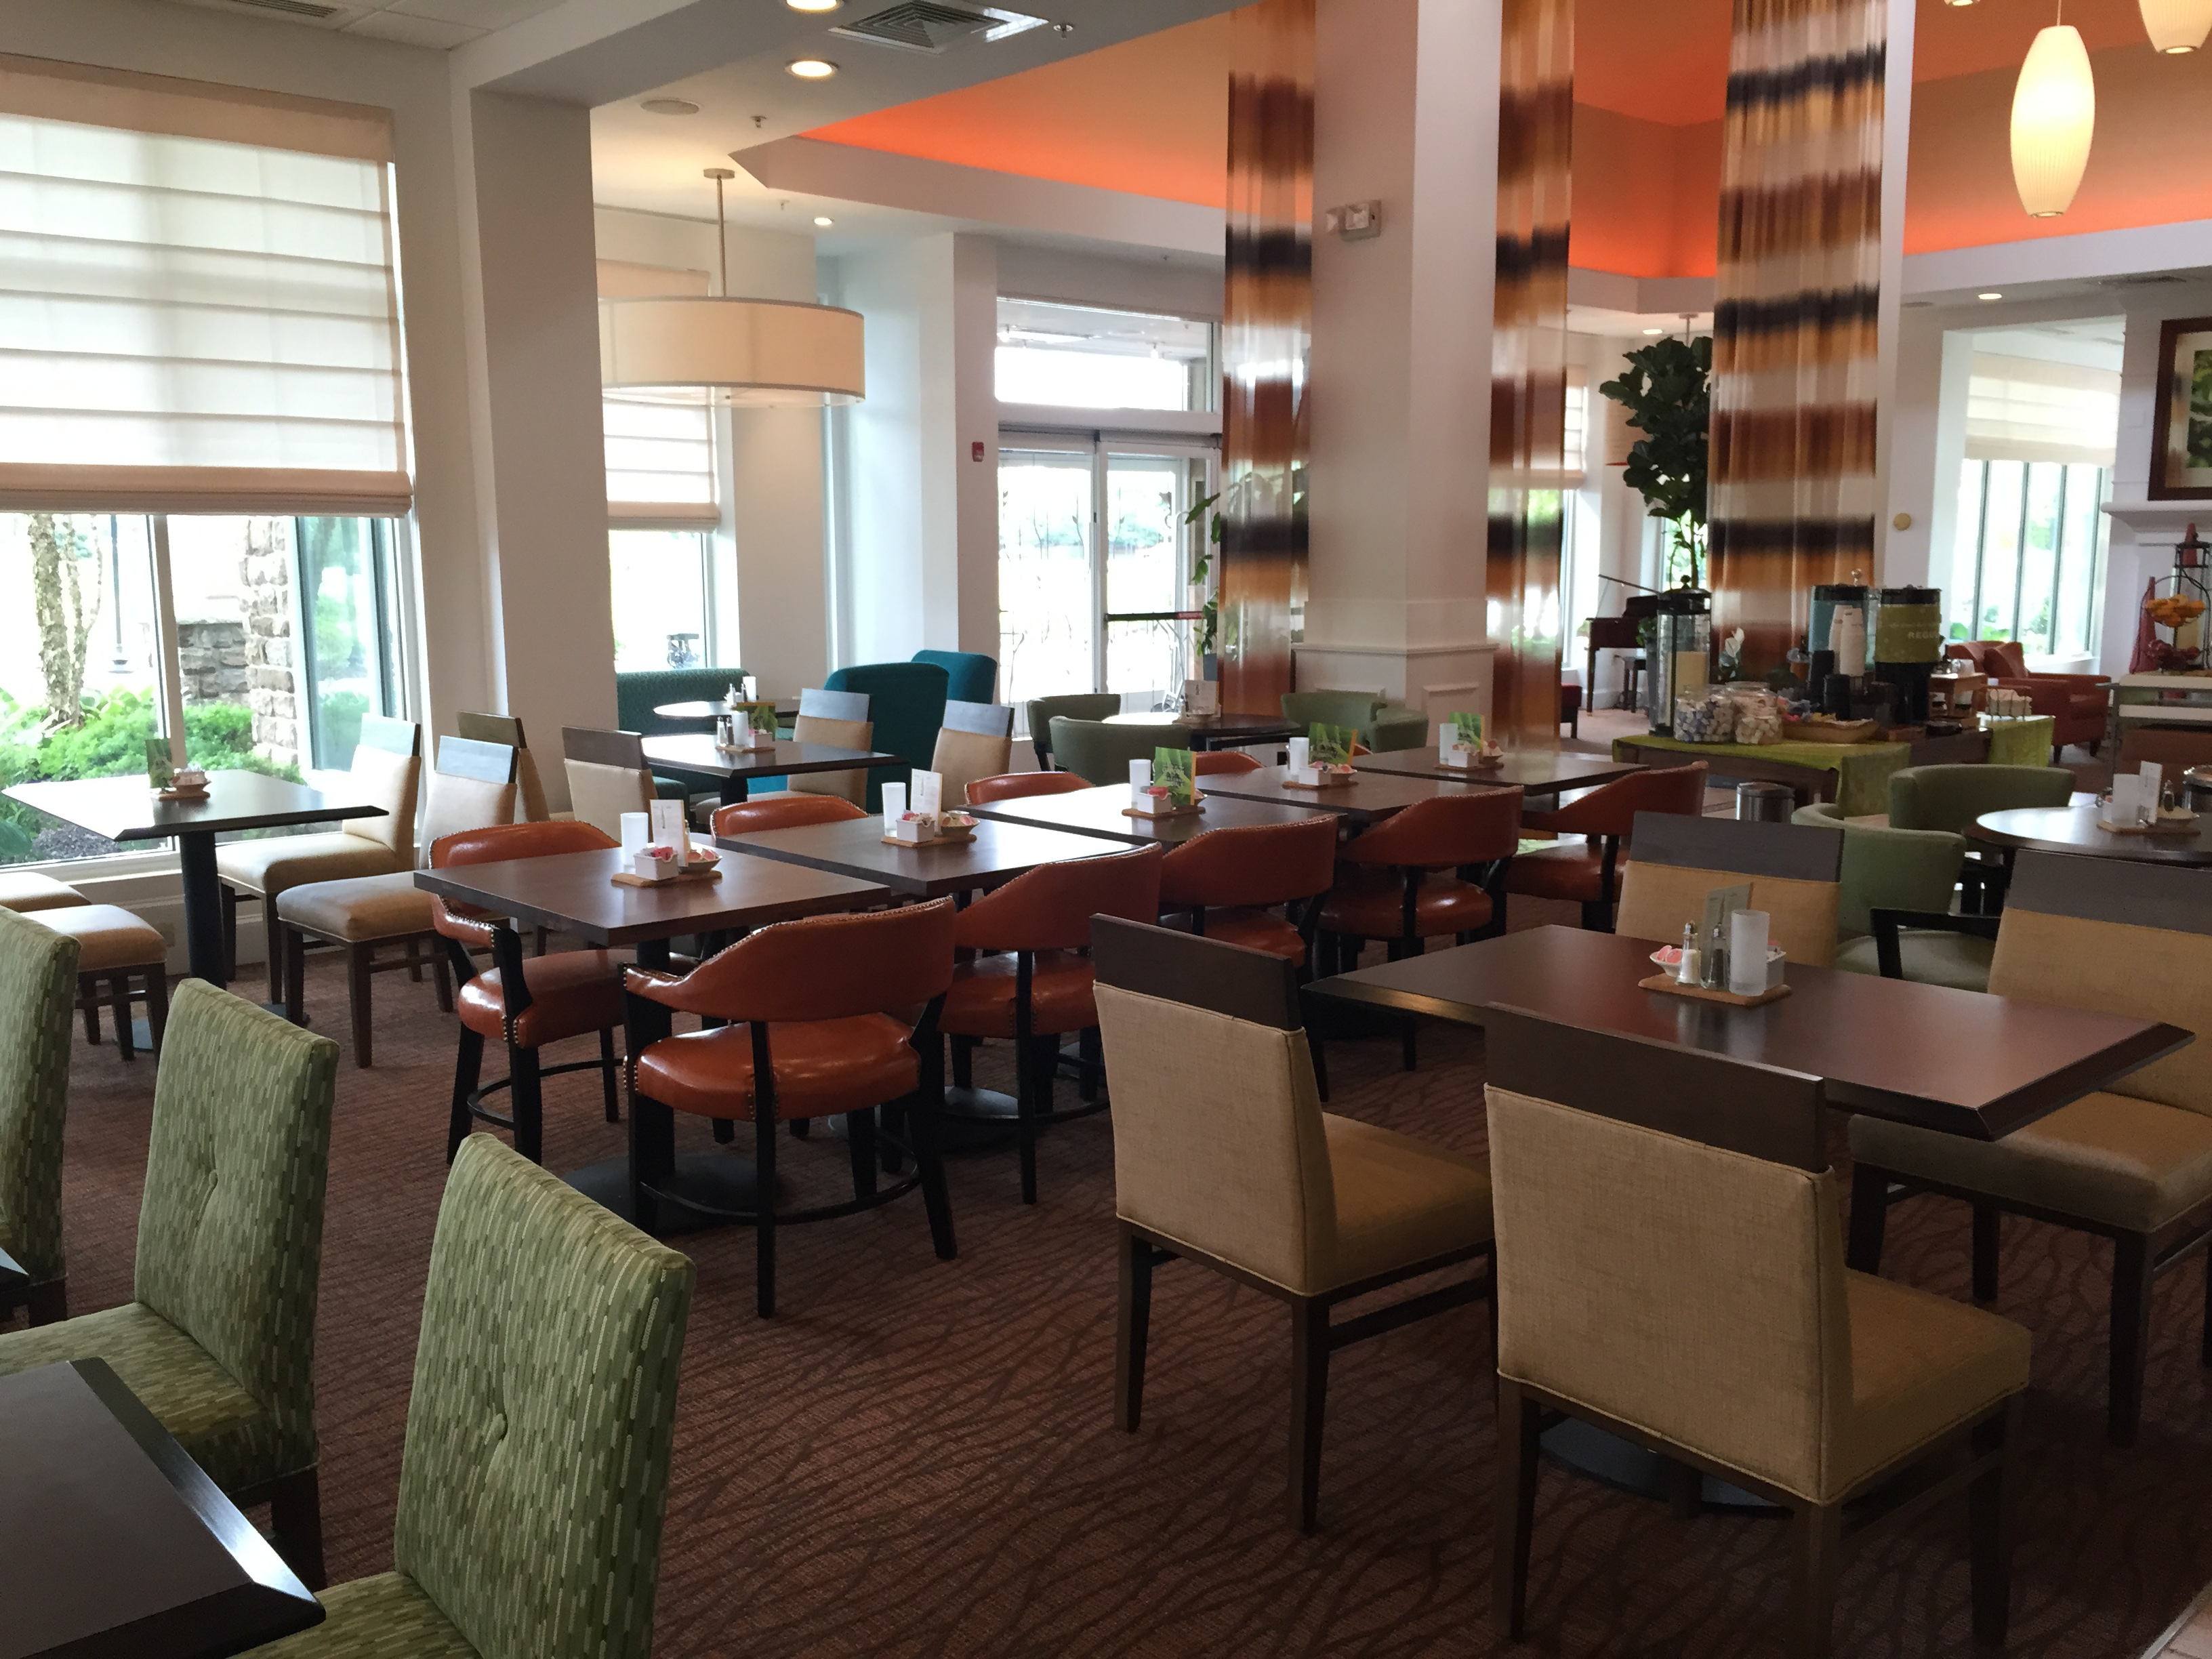 Hilton Garden Inn Distinct Hospitality Group